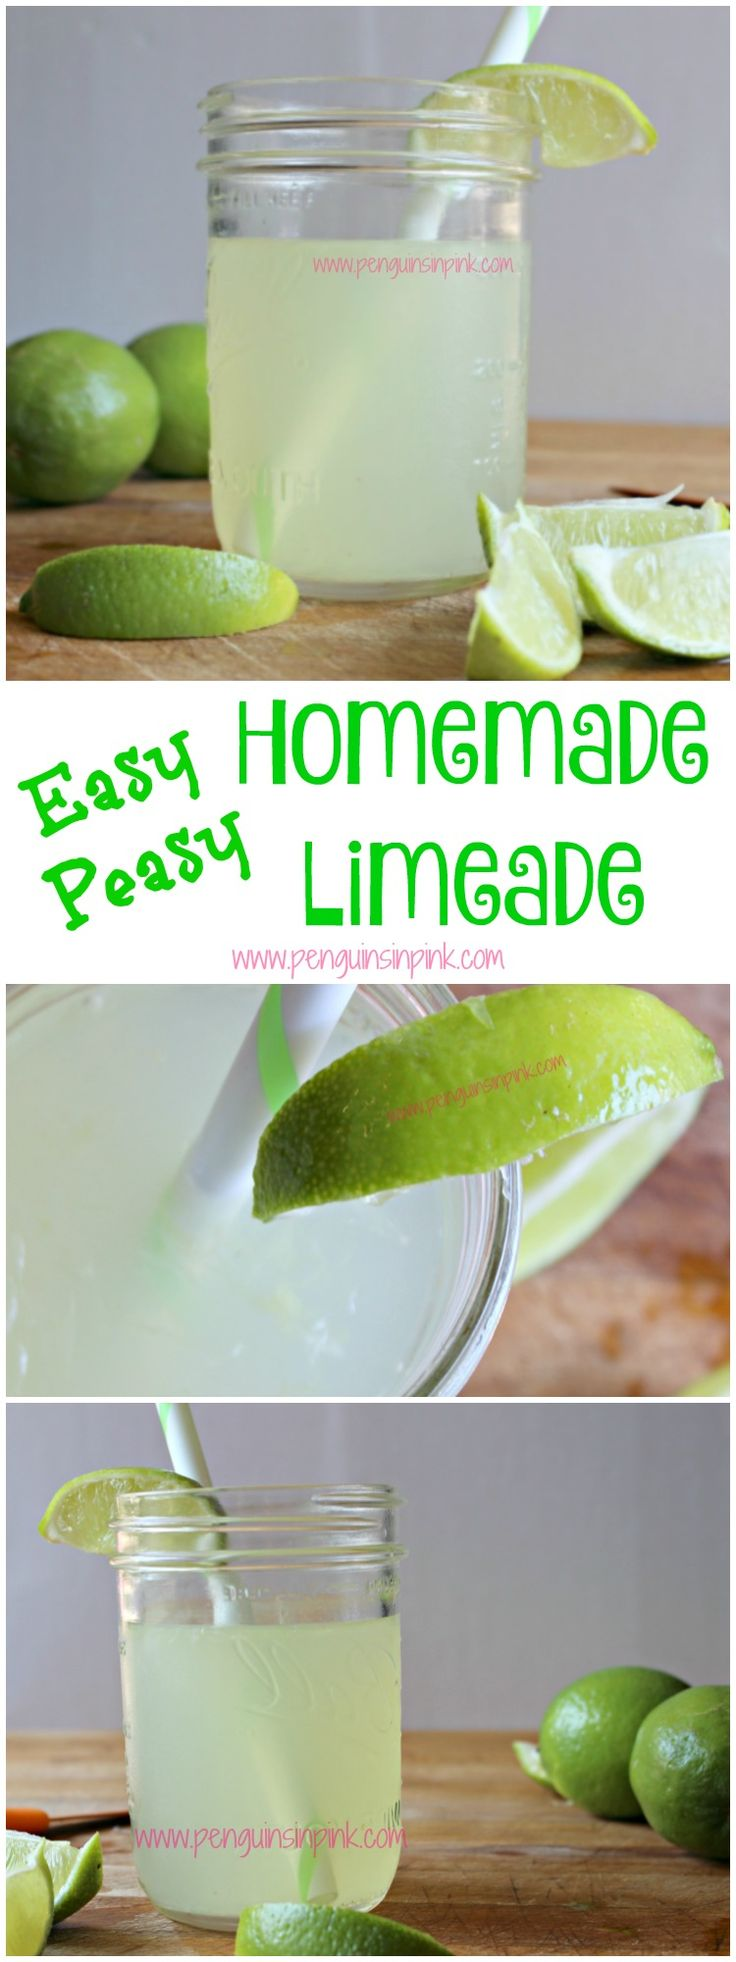 Easy Peasy Homemade Limeade - Homemade limeade tastes great, is way better than the store bought version, and is easy to make.